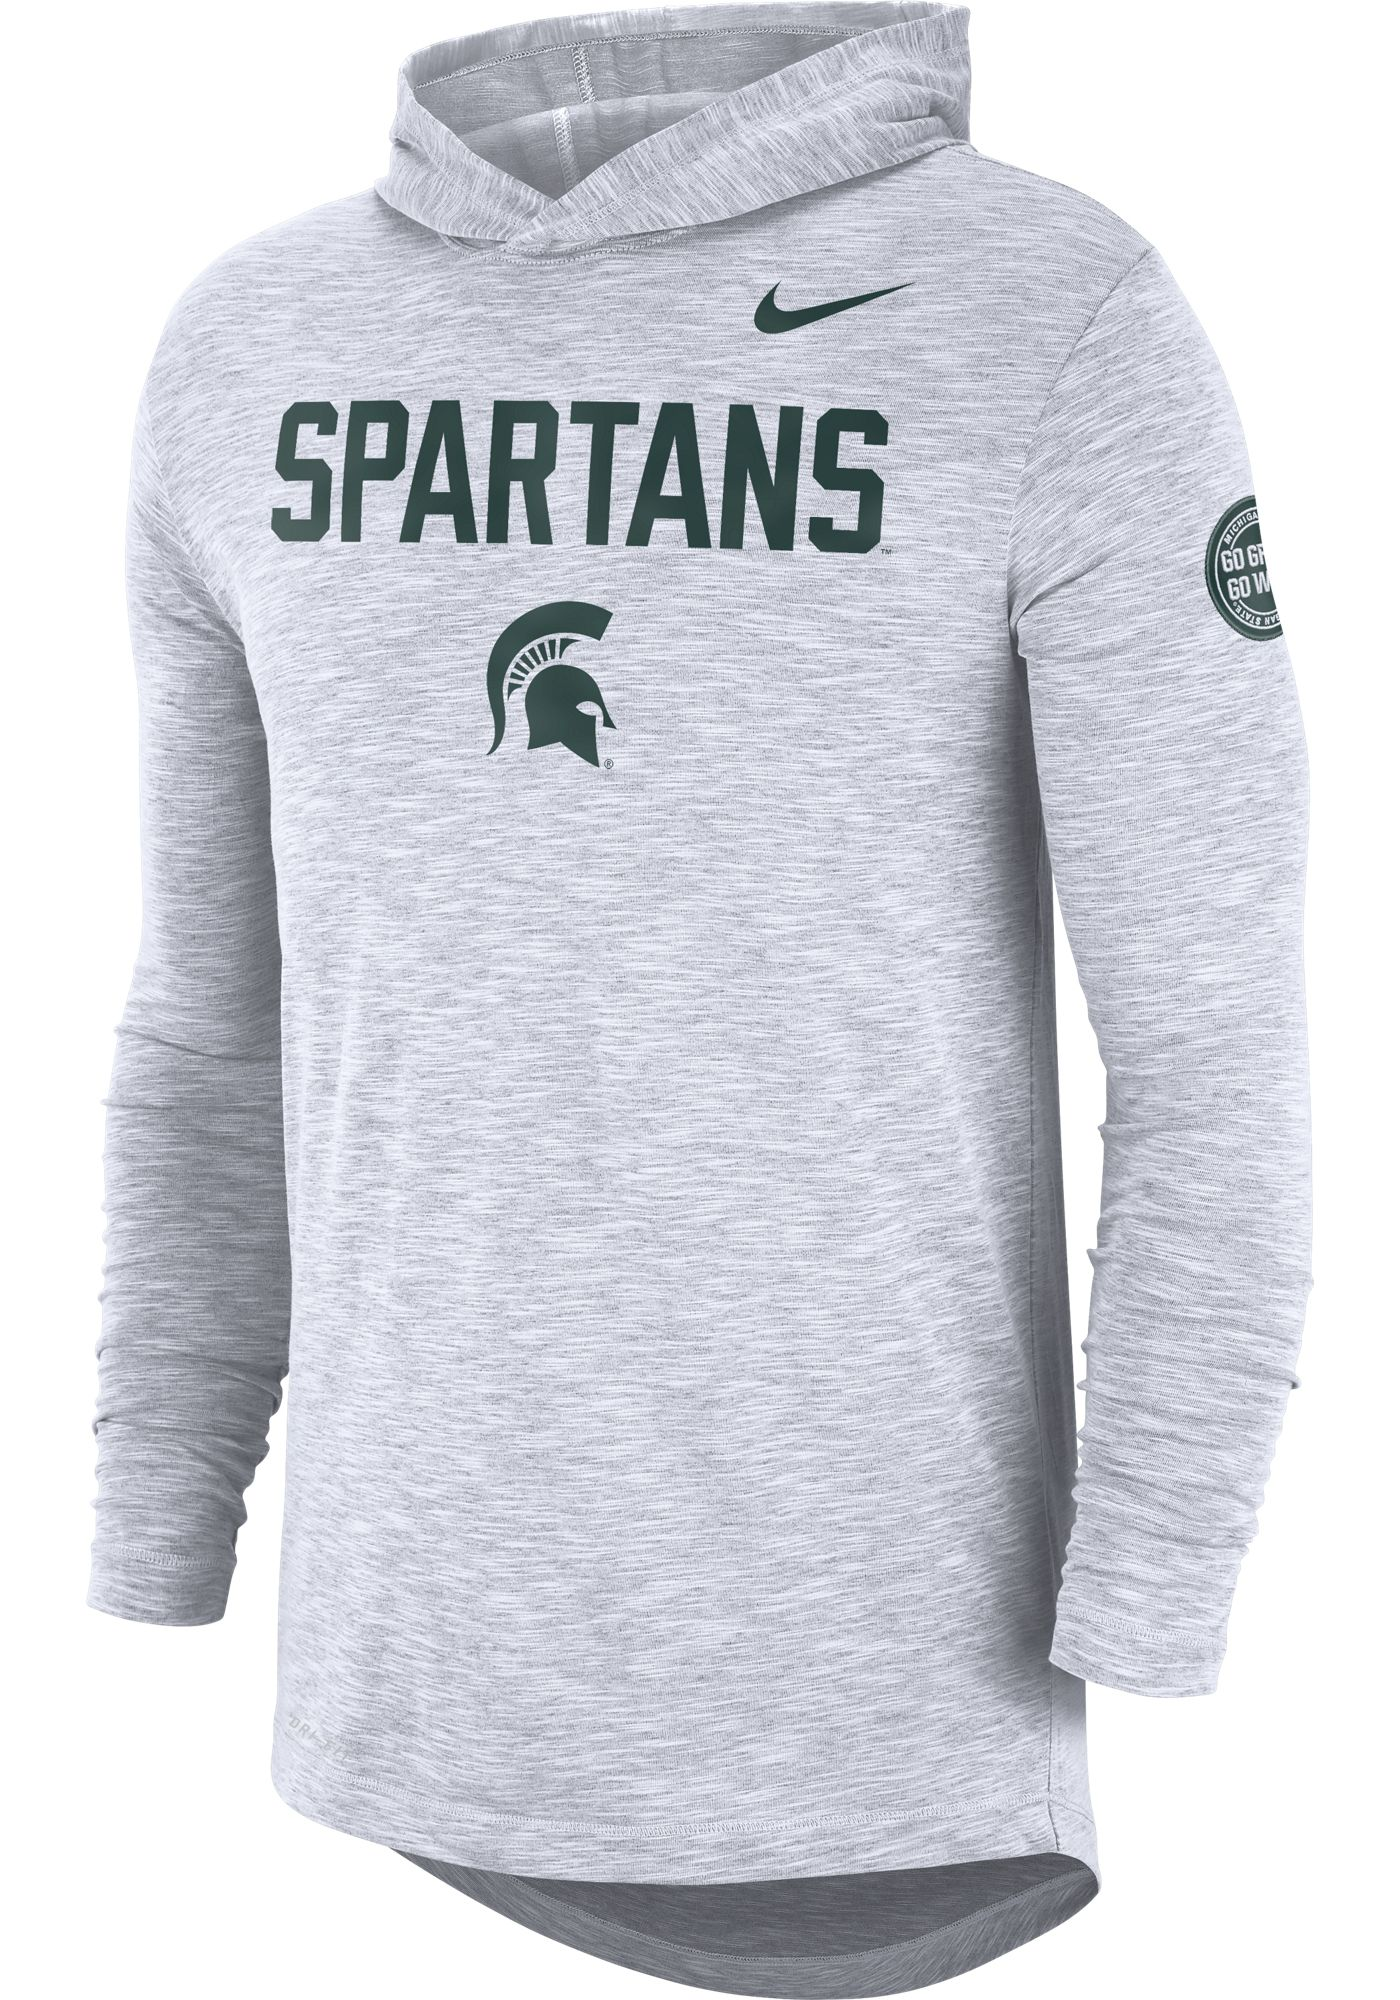 Nike Men's Michigan State Spartans Dri-FIT Rivalry Football Sideline Hooded White T-Shirt